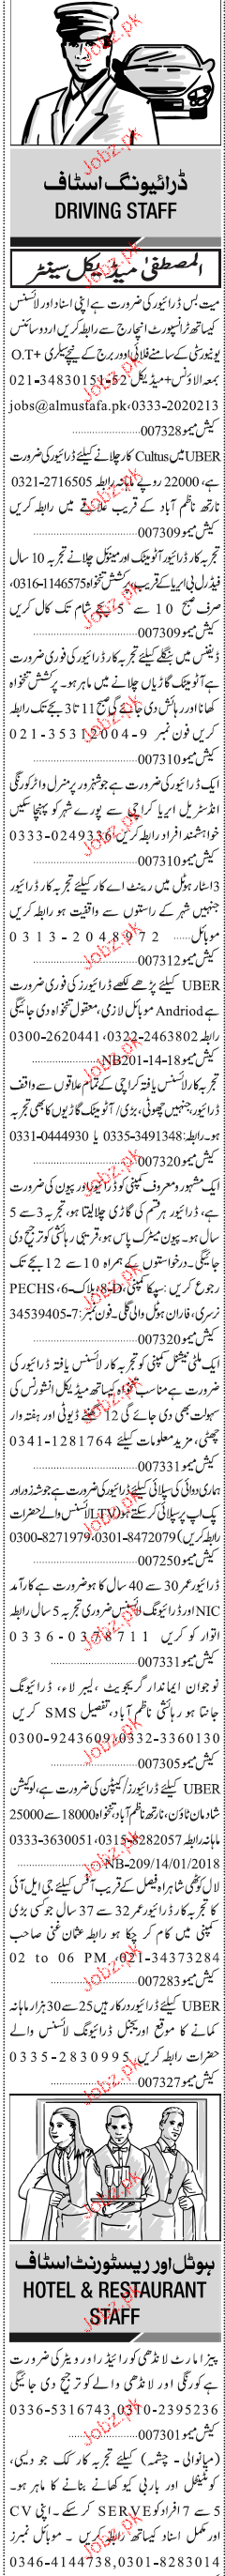 Sunday Jang Classified Driving Staff Job Opportunity